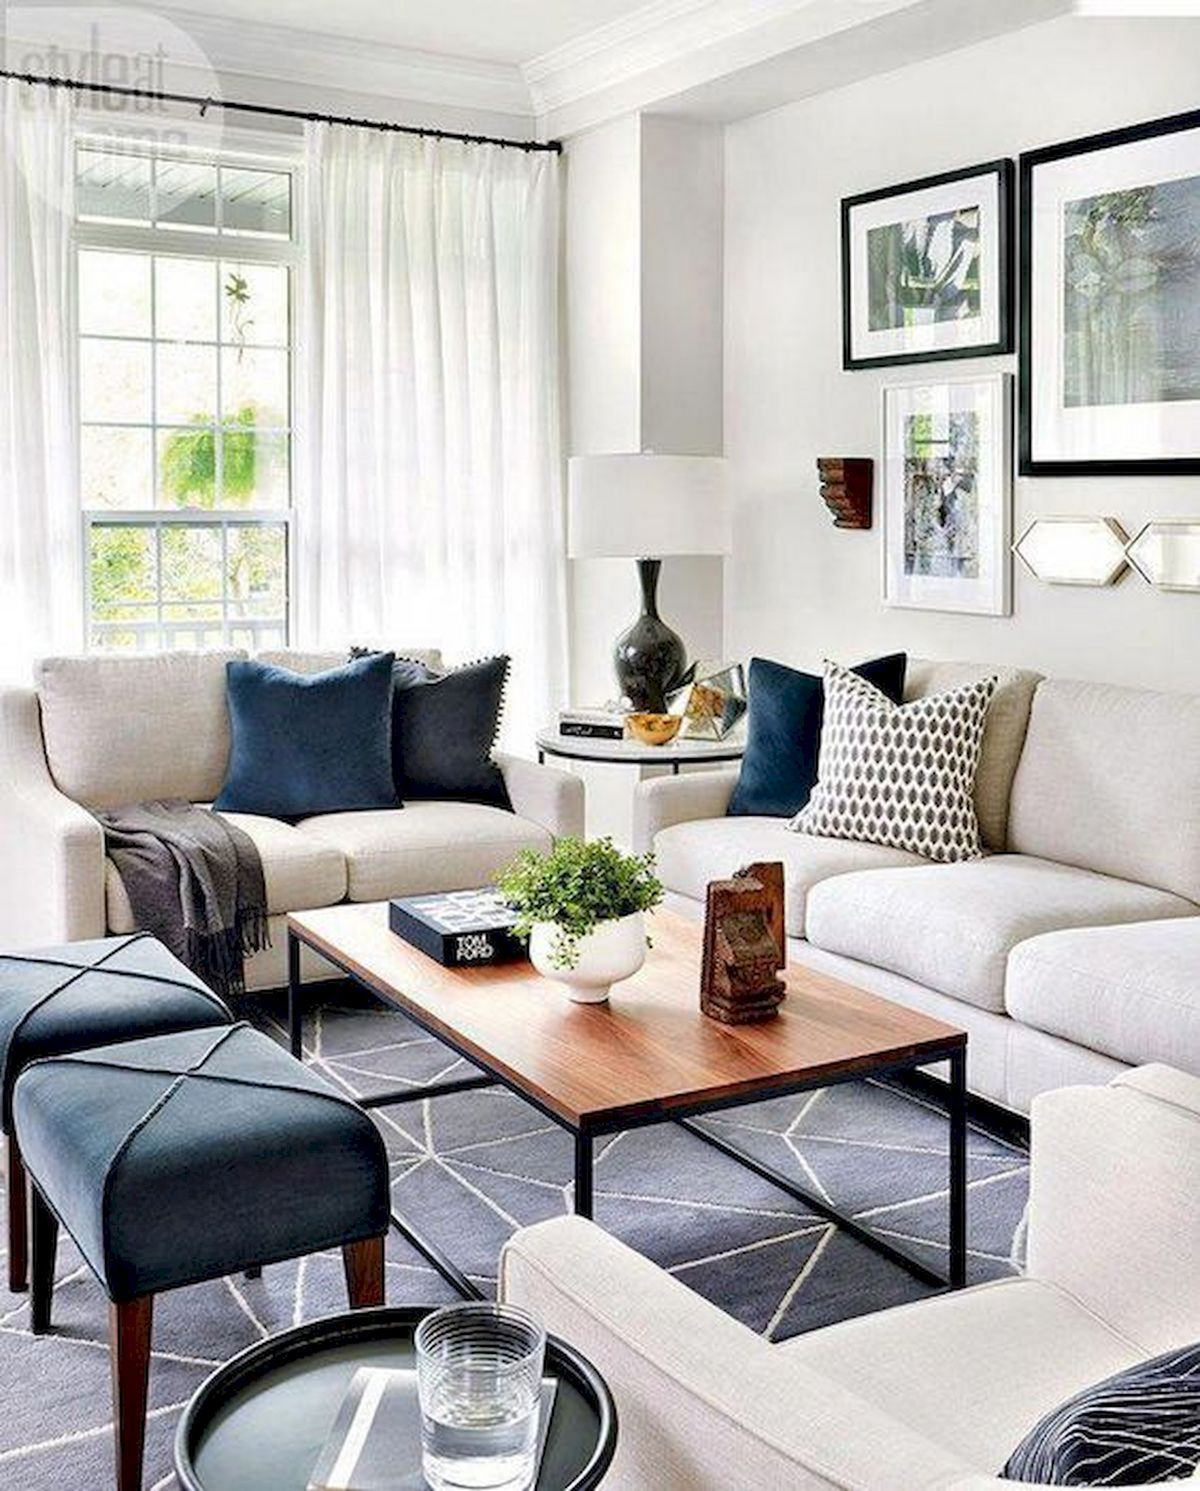 9 Fabulous Modern Living Room Design Ideas For Your Small Home In